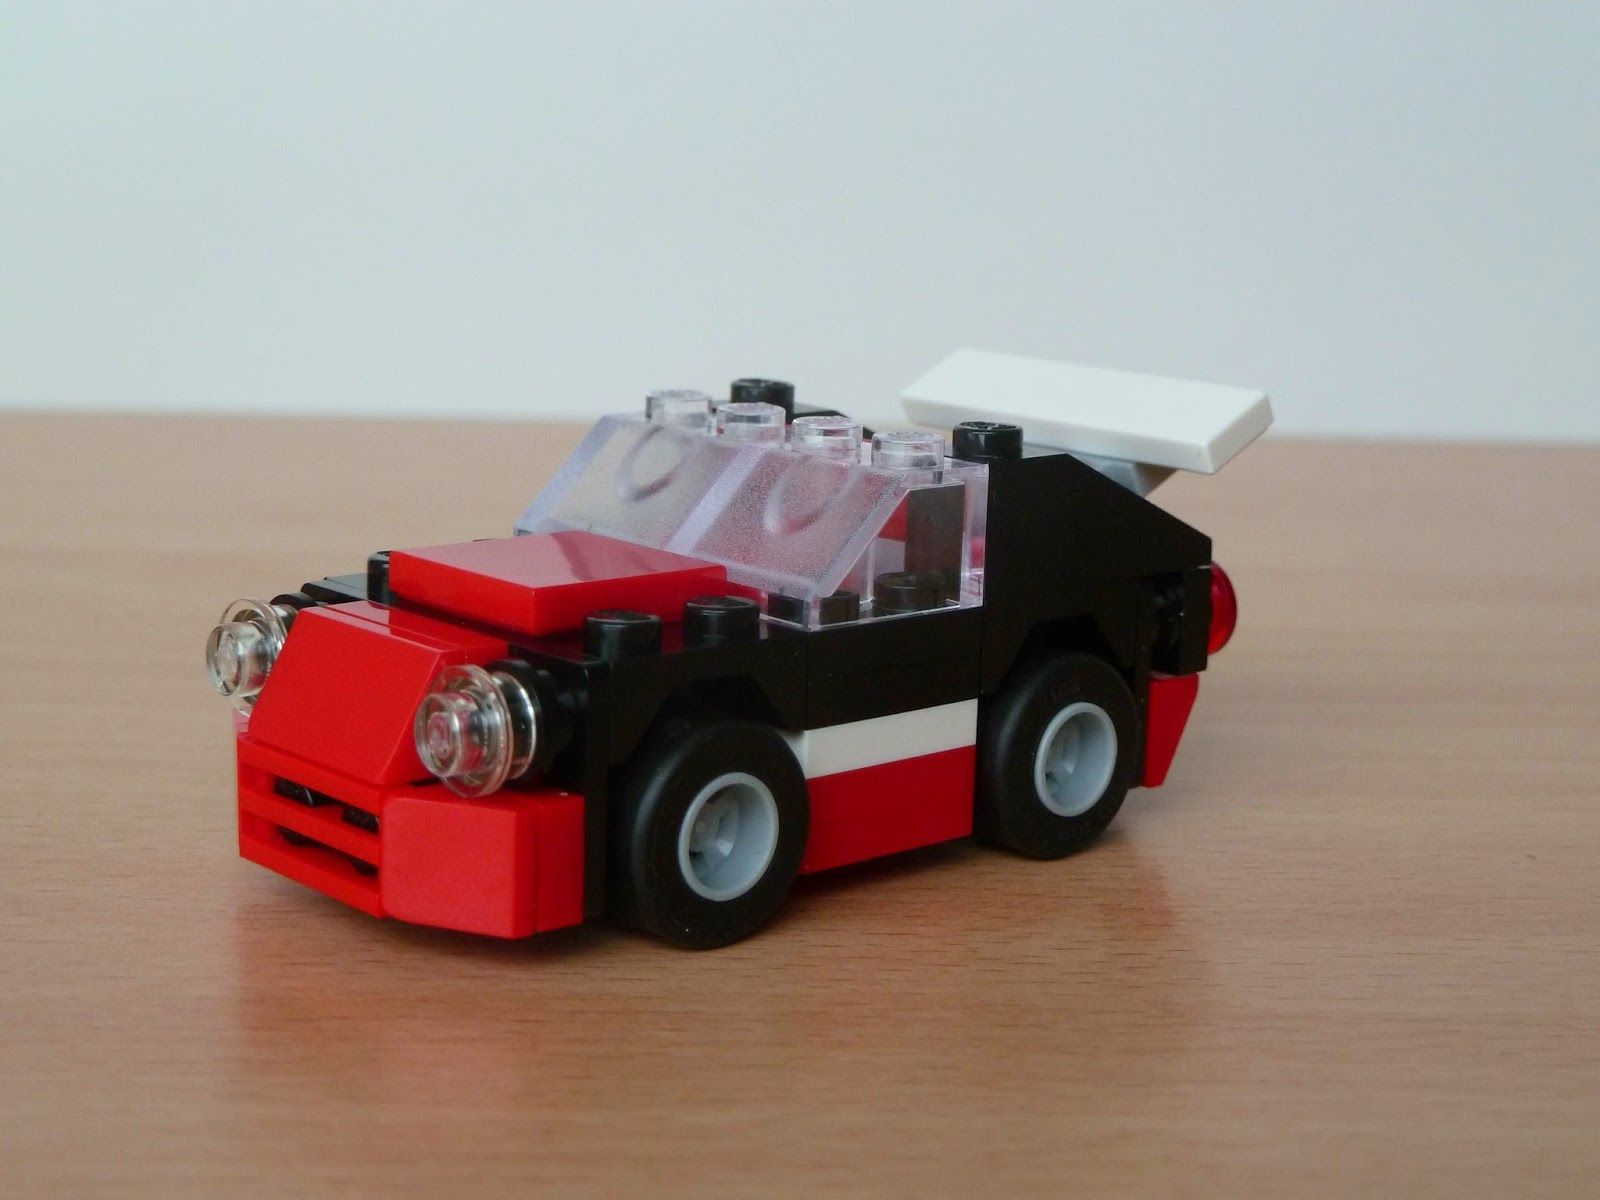 The Shell V Power Lego Collection 2 2014 40190 Ferrari F Polybag 30193 250 Gt Berlinetta 2y